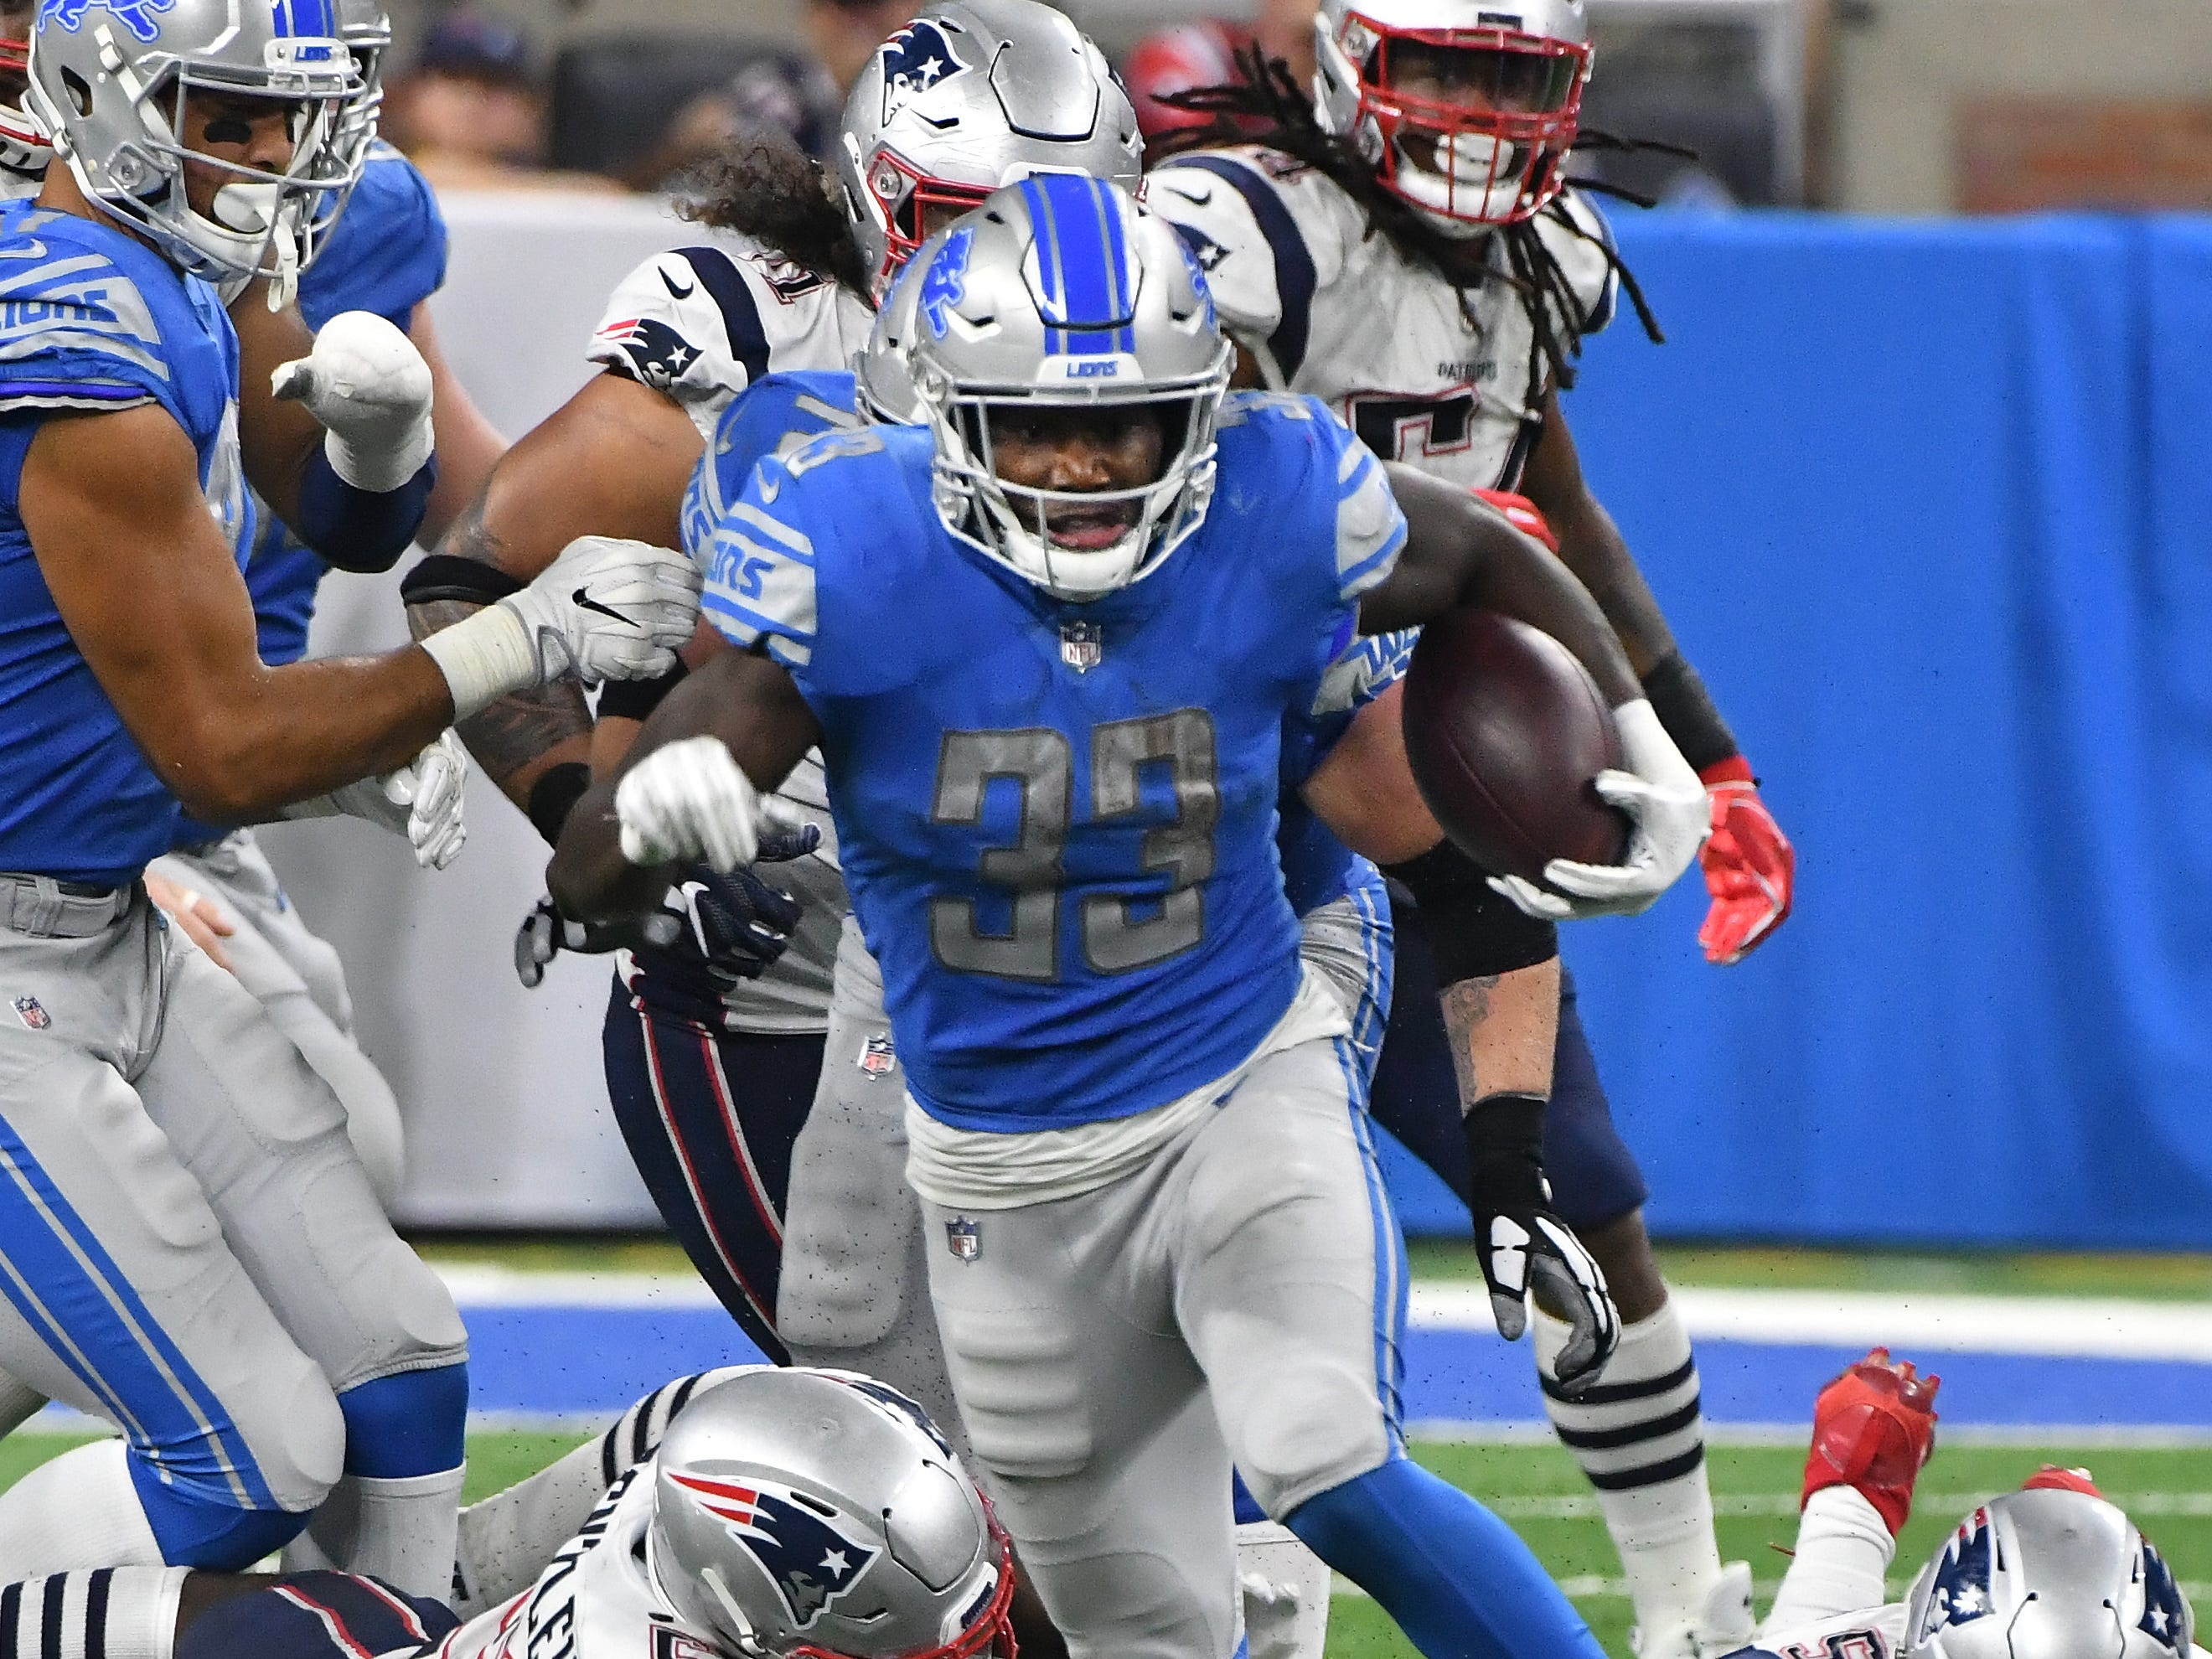 Lions running back Kerryon Johnson breaks up field for a first down run in the 3rd quarter.